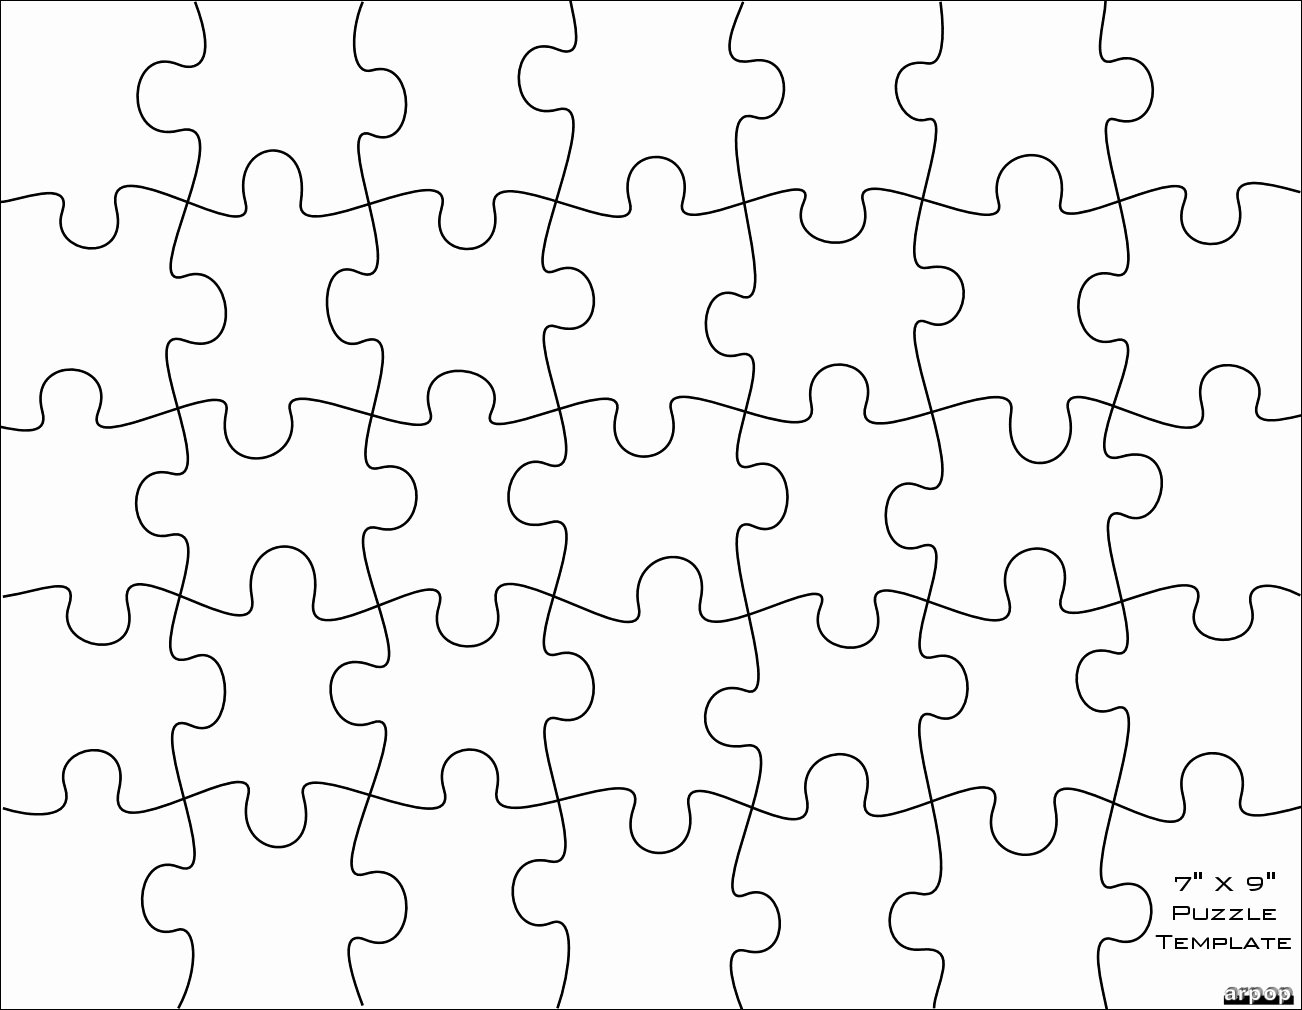 Puzzle Pieces Template Pdf Luxury Free Puzzle Pieces Template Download Free Clip Art Free